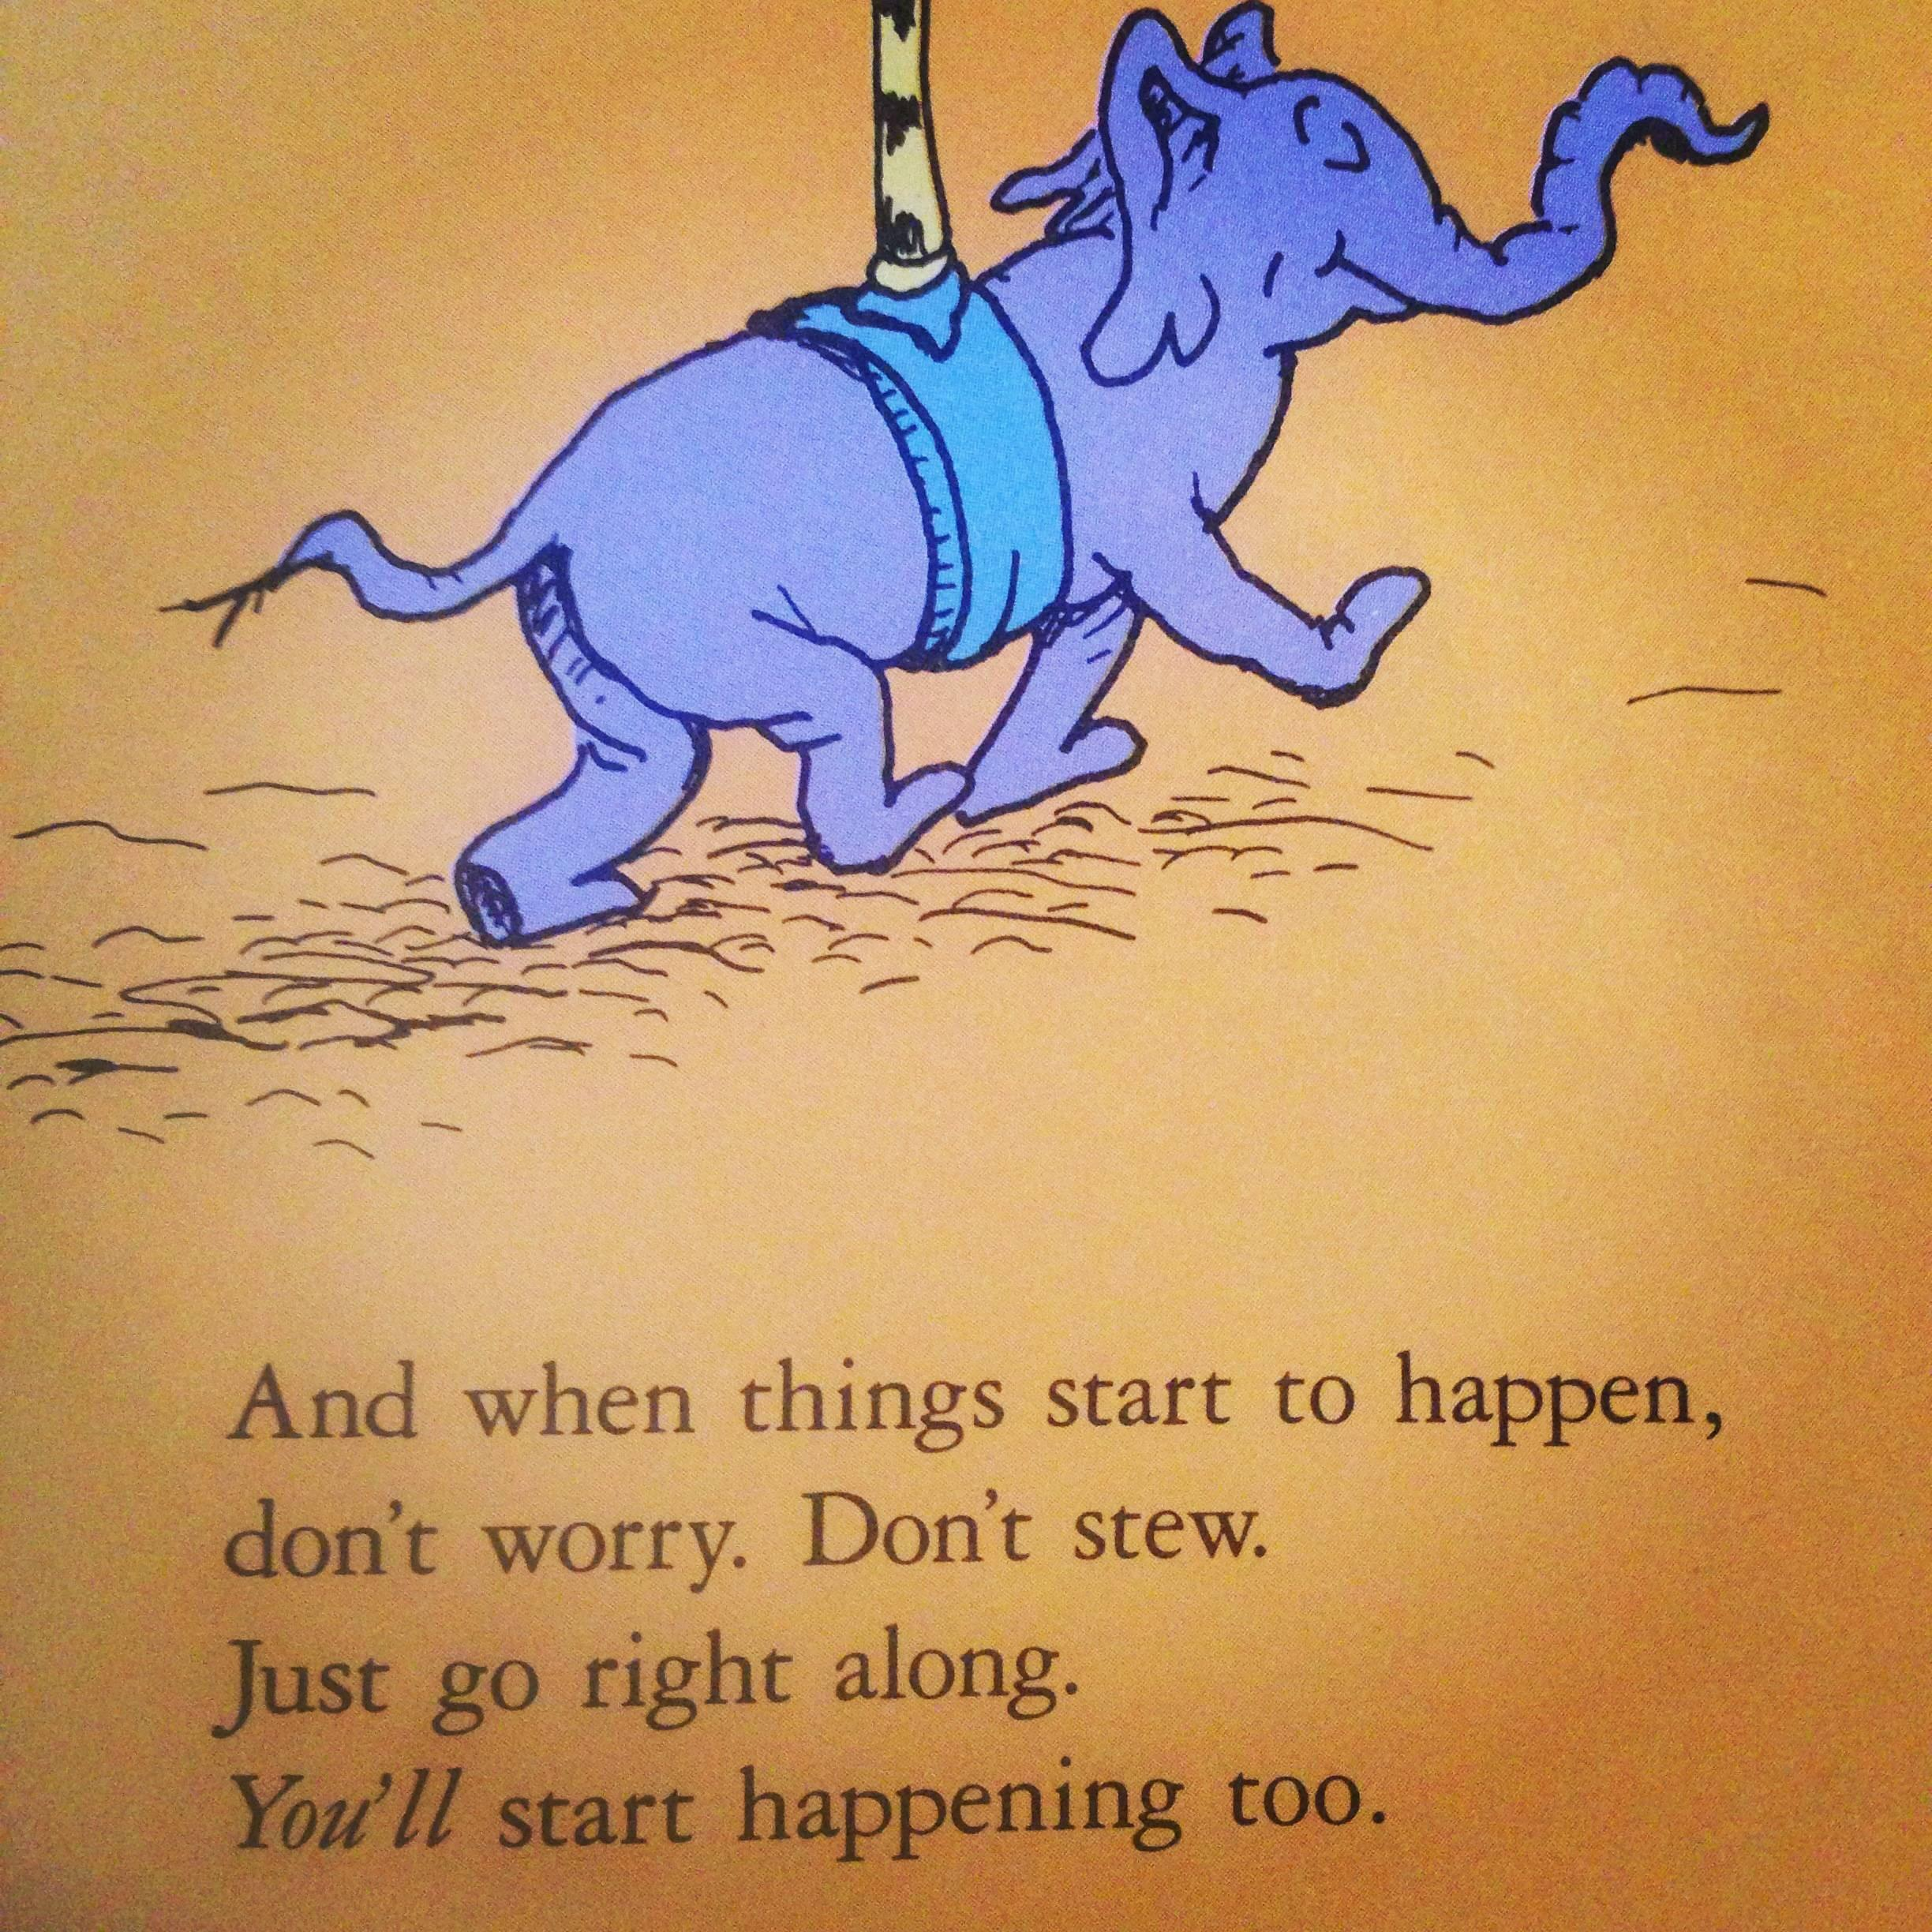 [Image] Wise words from Dr. Seuss